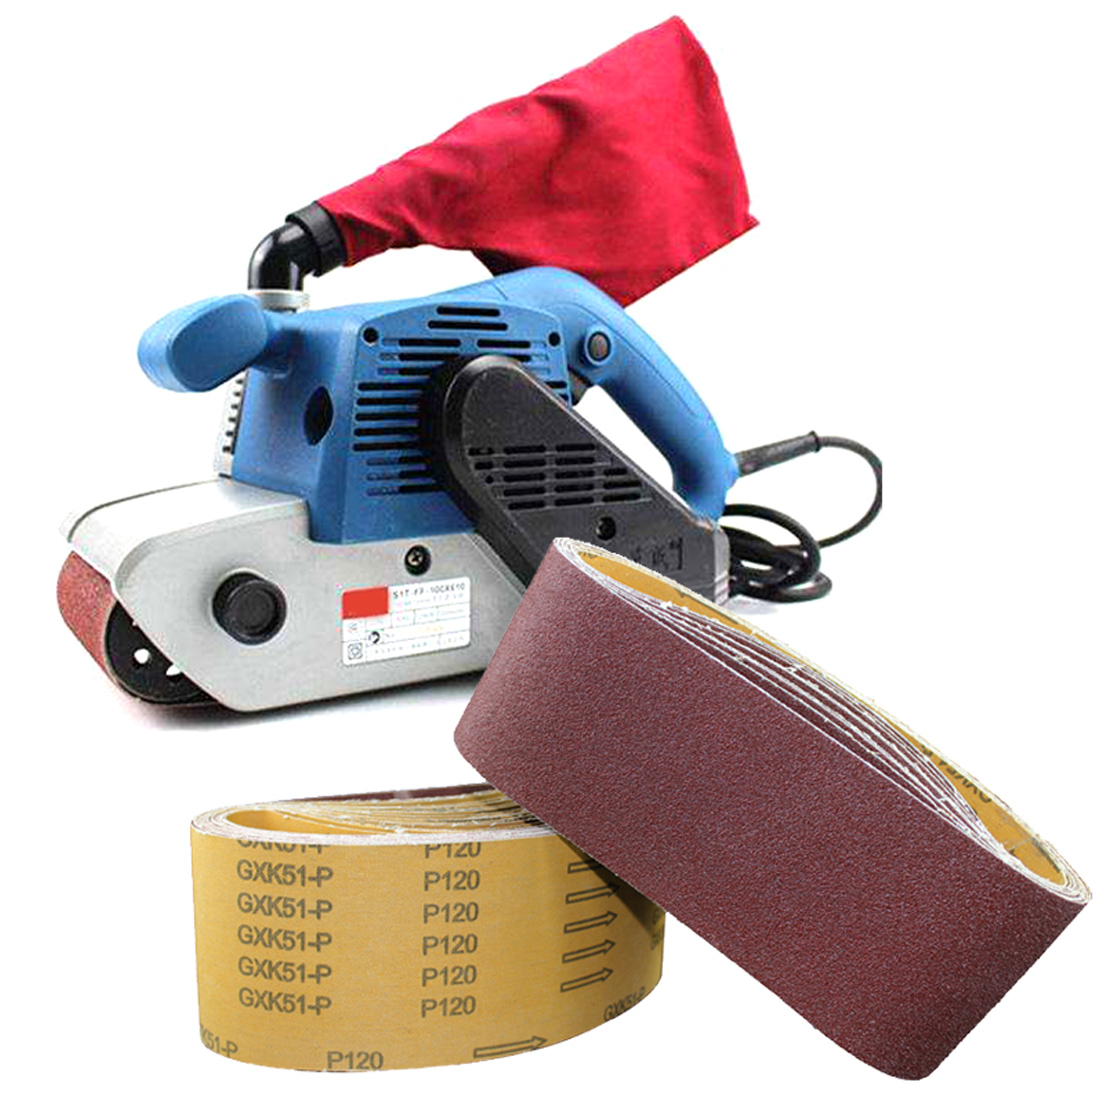 Sander Grinder Belt For Drill Grinding Polishing Power Tool Accessories  Sanding Belt